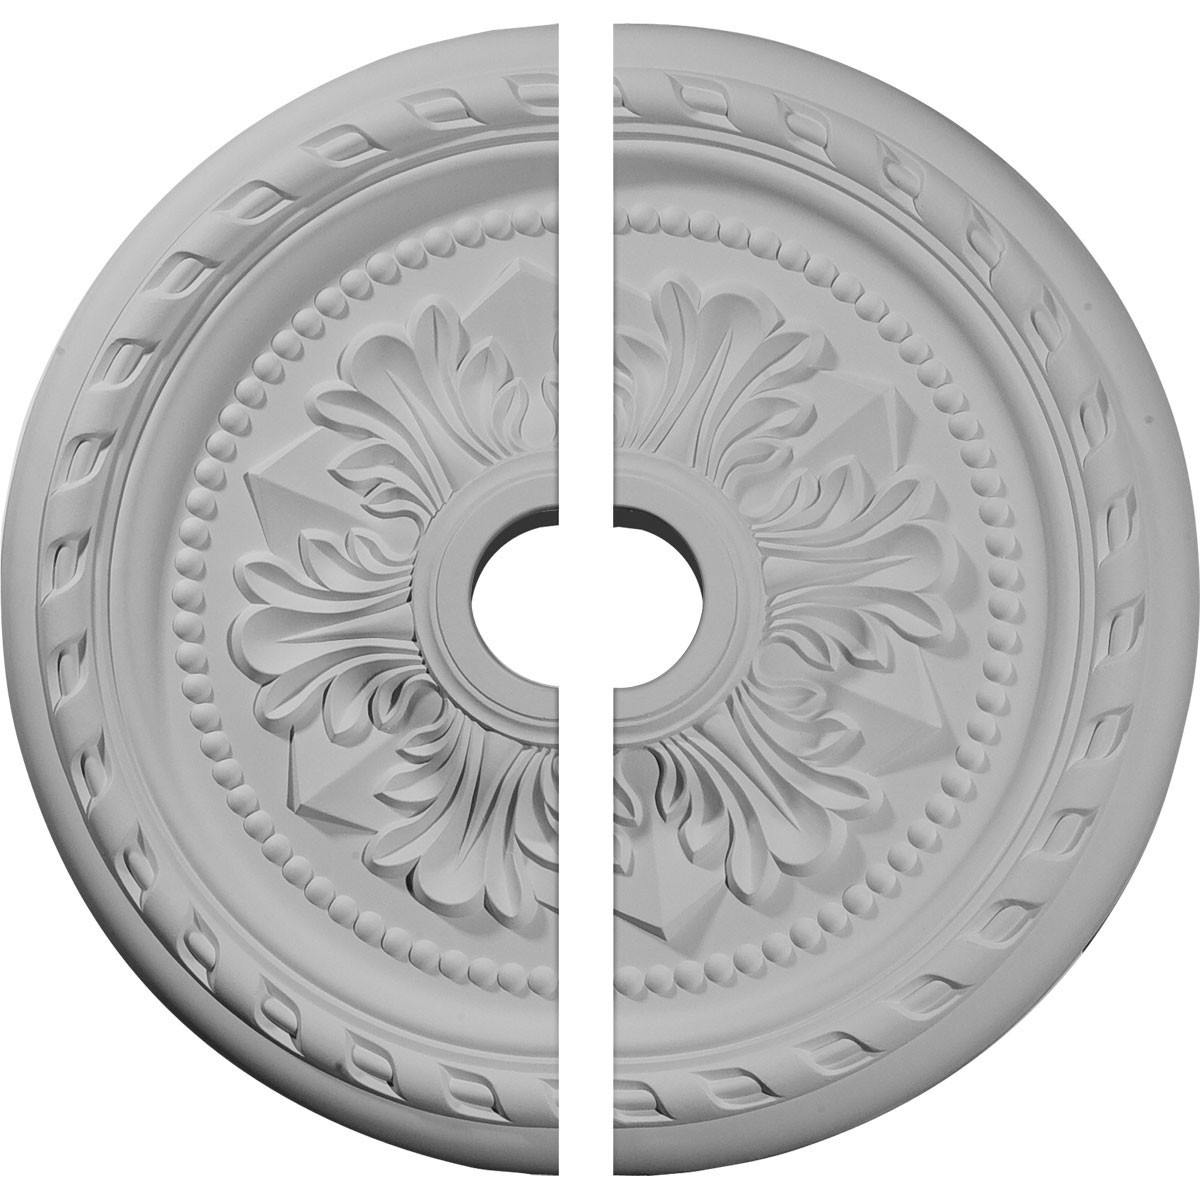 """EM-CM23PM2 - 23 5/8""""OD x 3 5/8""""ID x 1 5/8""""P Palmetto Ceiling Medallion, Two Piece (Fits Canopies up to 3 5/8"""")"""